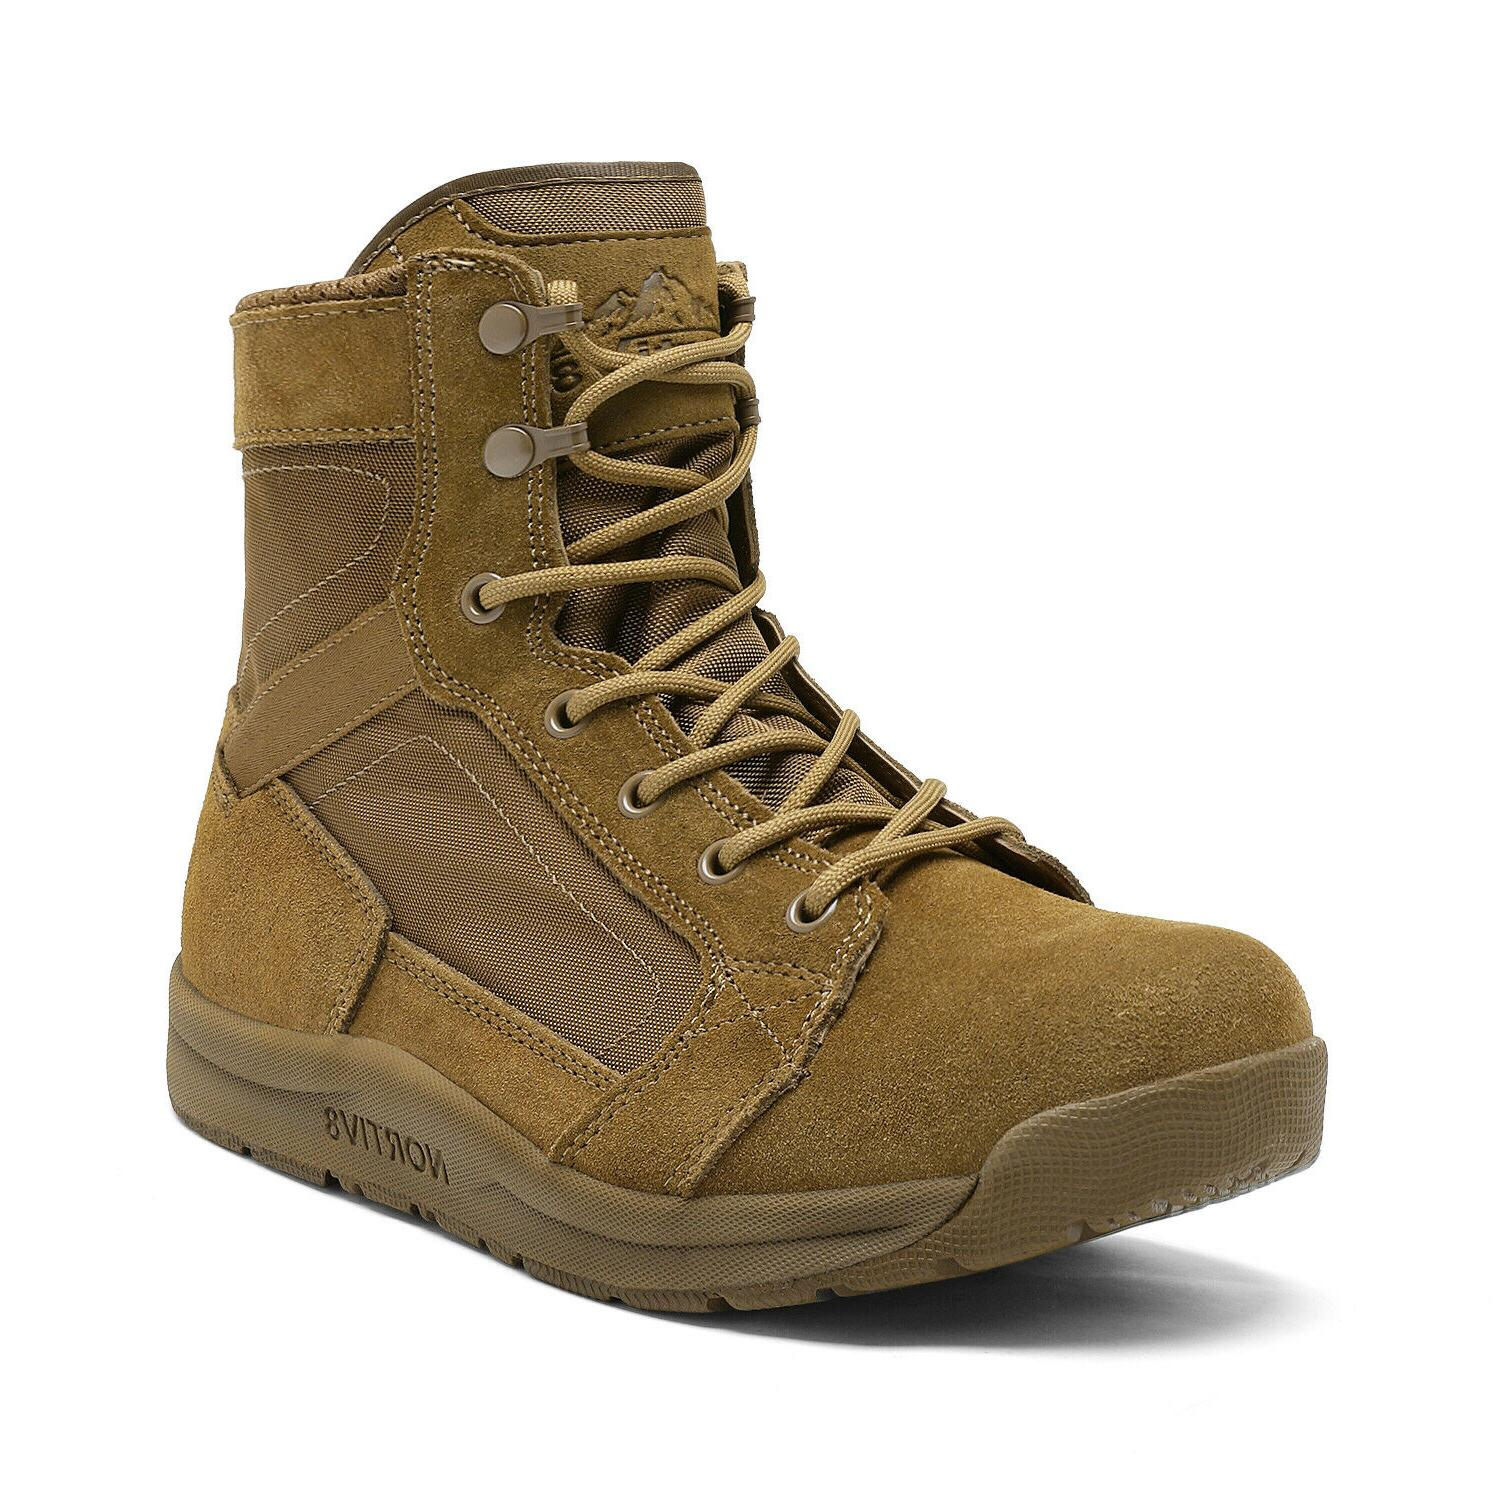 Mens Military Army Work Boots Shoe